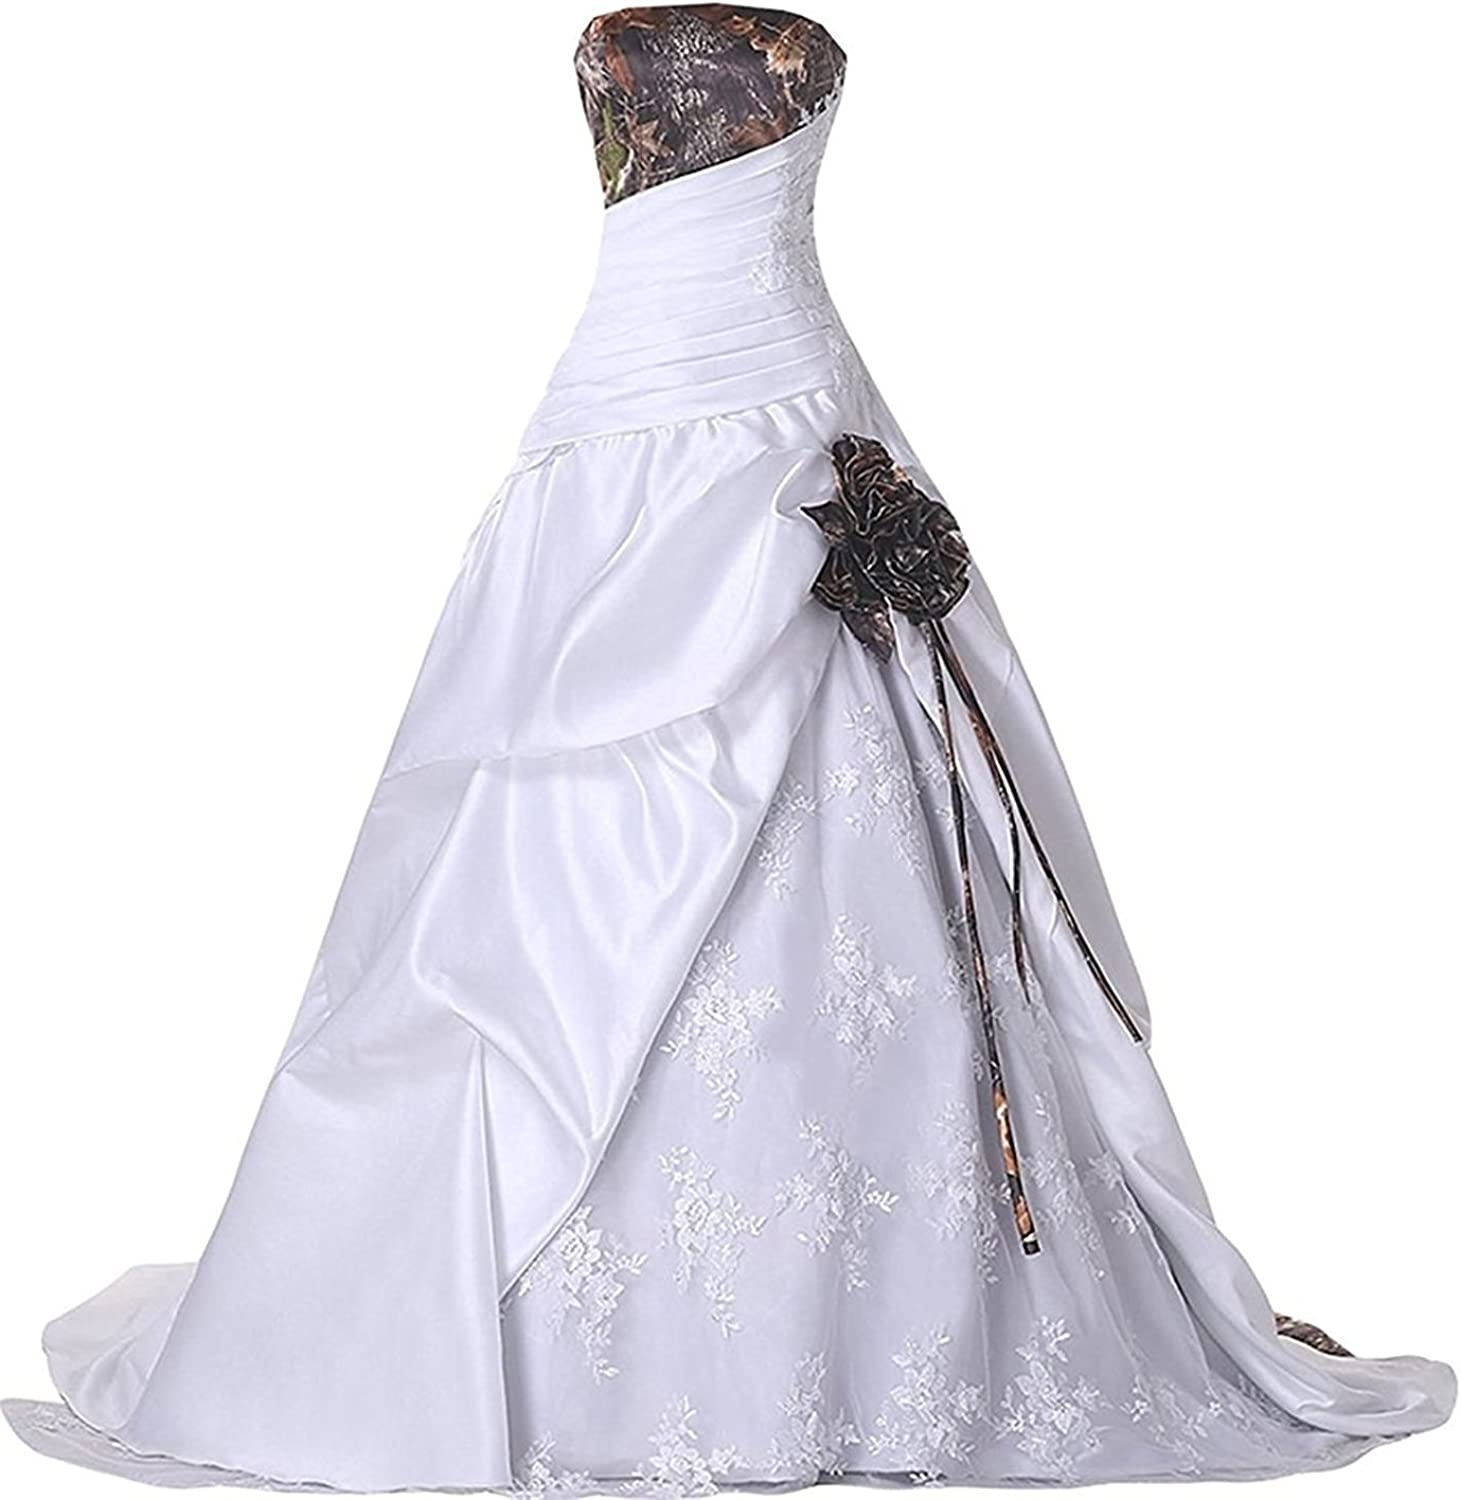 BEALEGAN Lady Women's Camouflage Wedding Dresses Appliques Camo Bridal Quinceanera Gowns